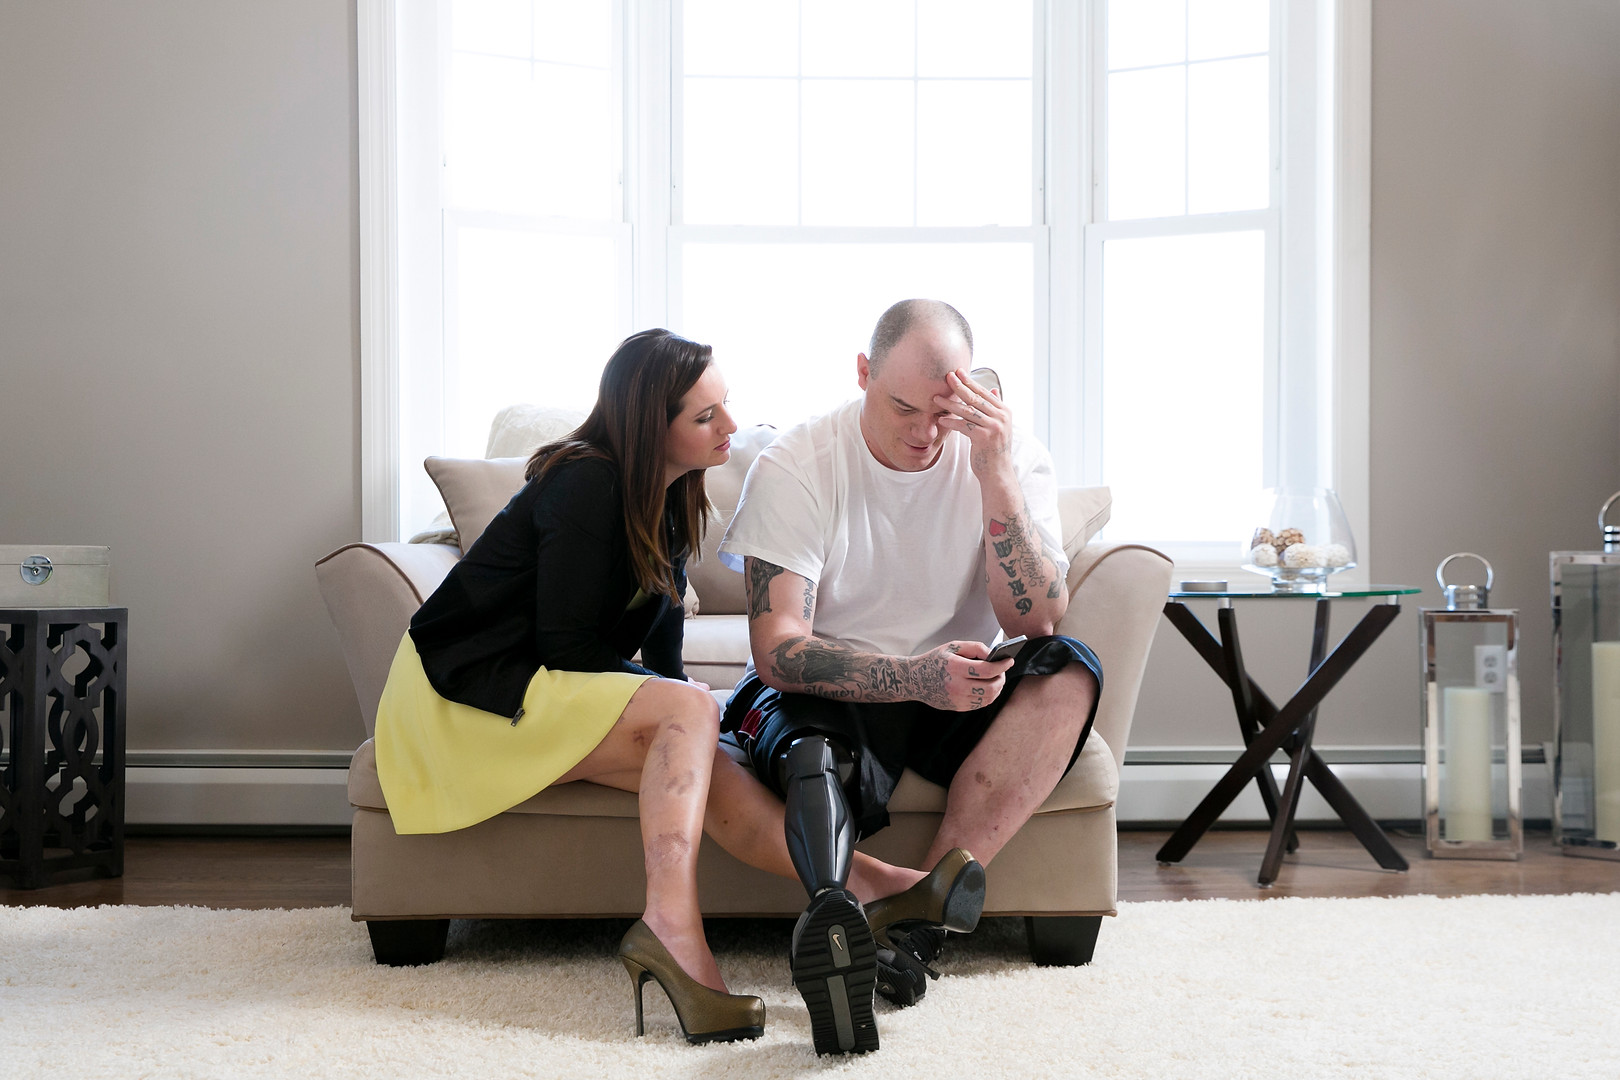 "Jaqui Webb and her fiancé, Paul Norden were both injured in the Boston Marathon bombings in 2013.  Jaqui had shrapnel in her right leg and Paul lost his right leg. This image was taken for the article ""A Year After the Boston Marathon Bombings, Injured Brothers Endure"" for The New York Times"